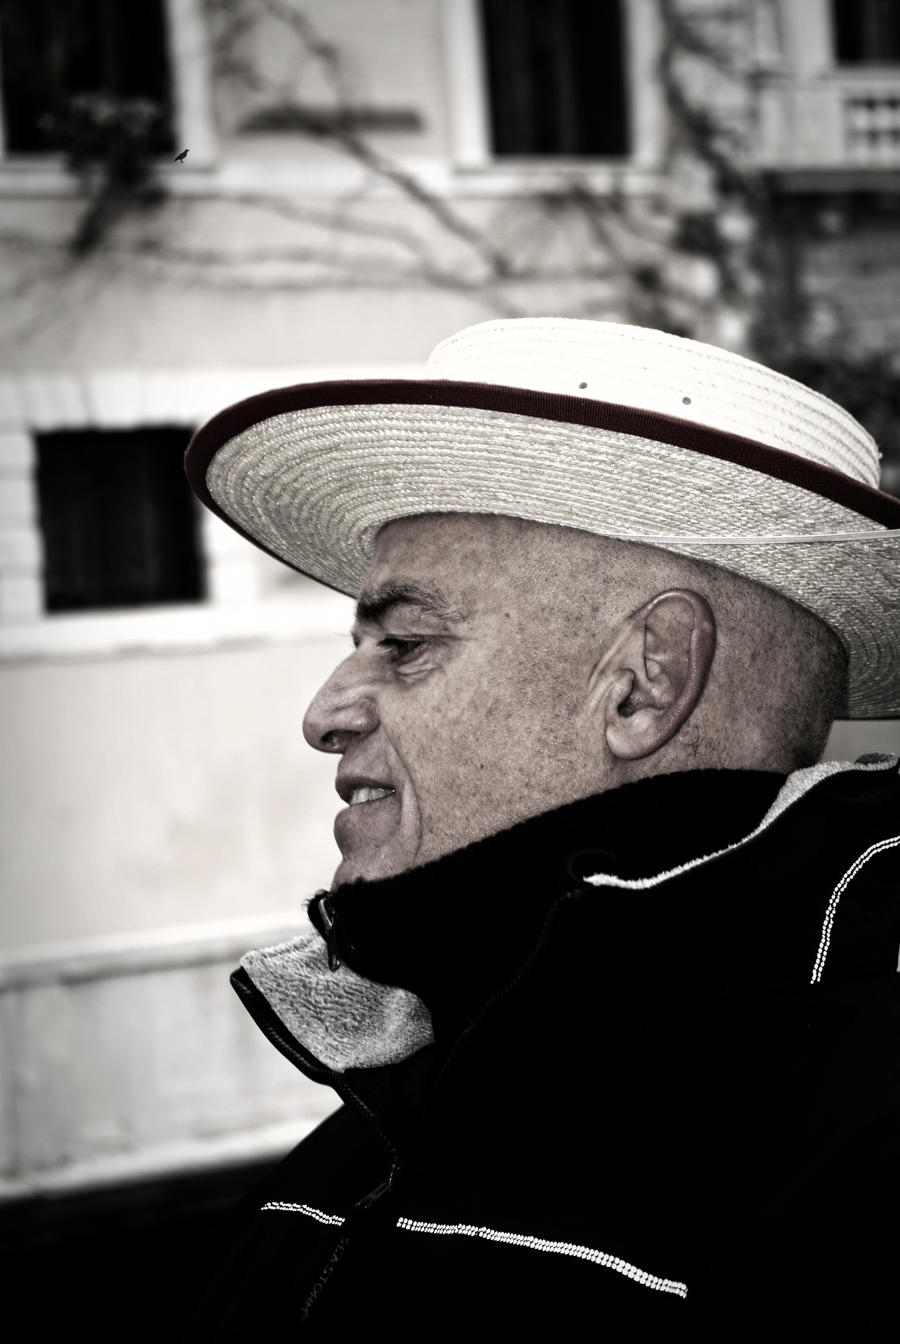 Venice people 4 by jennystokes